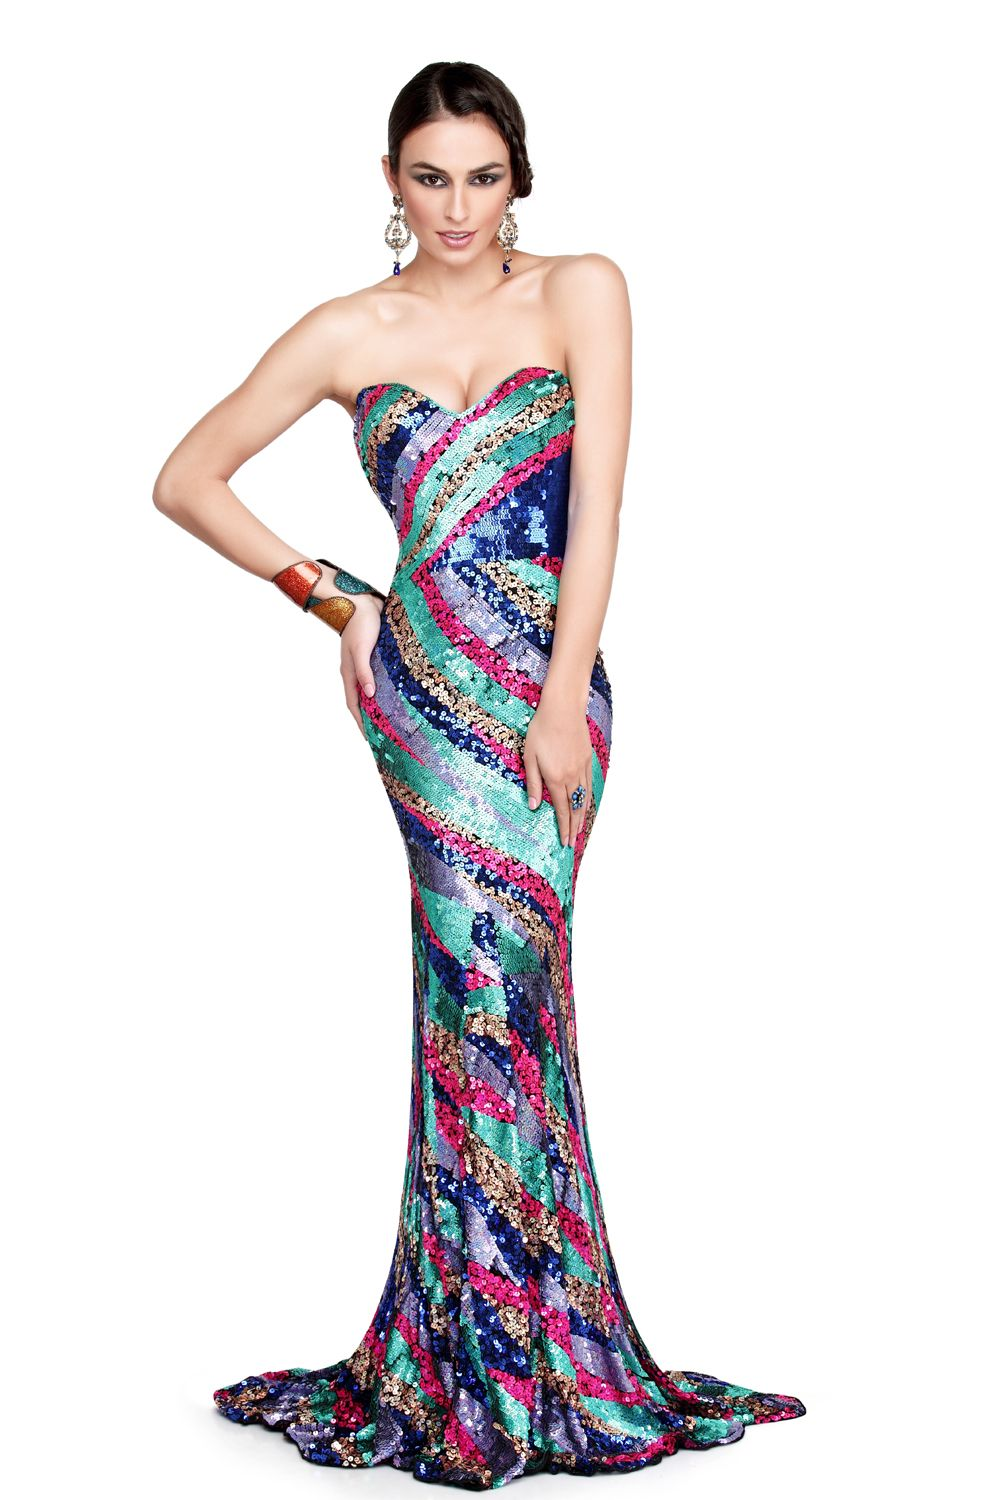 Prom dress at The Bridal Shop, Fargo, ND 701.235.0541 | Prom 2013 ...